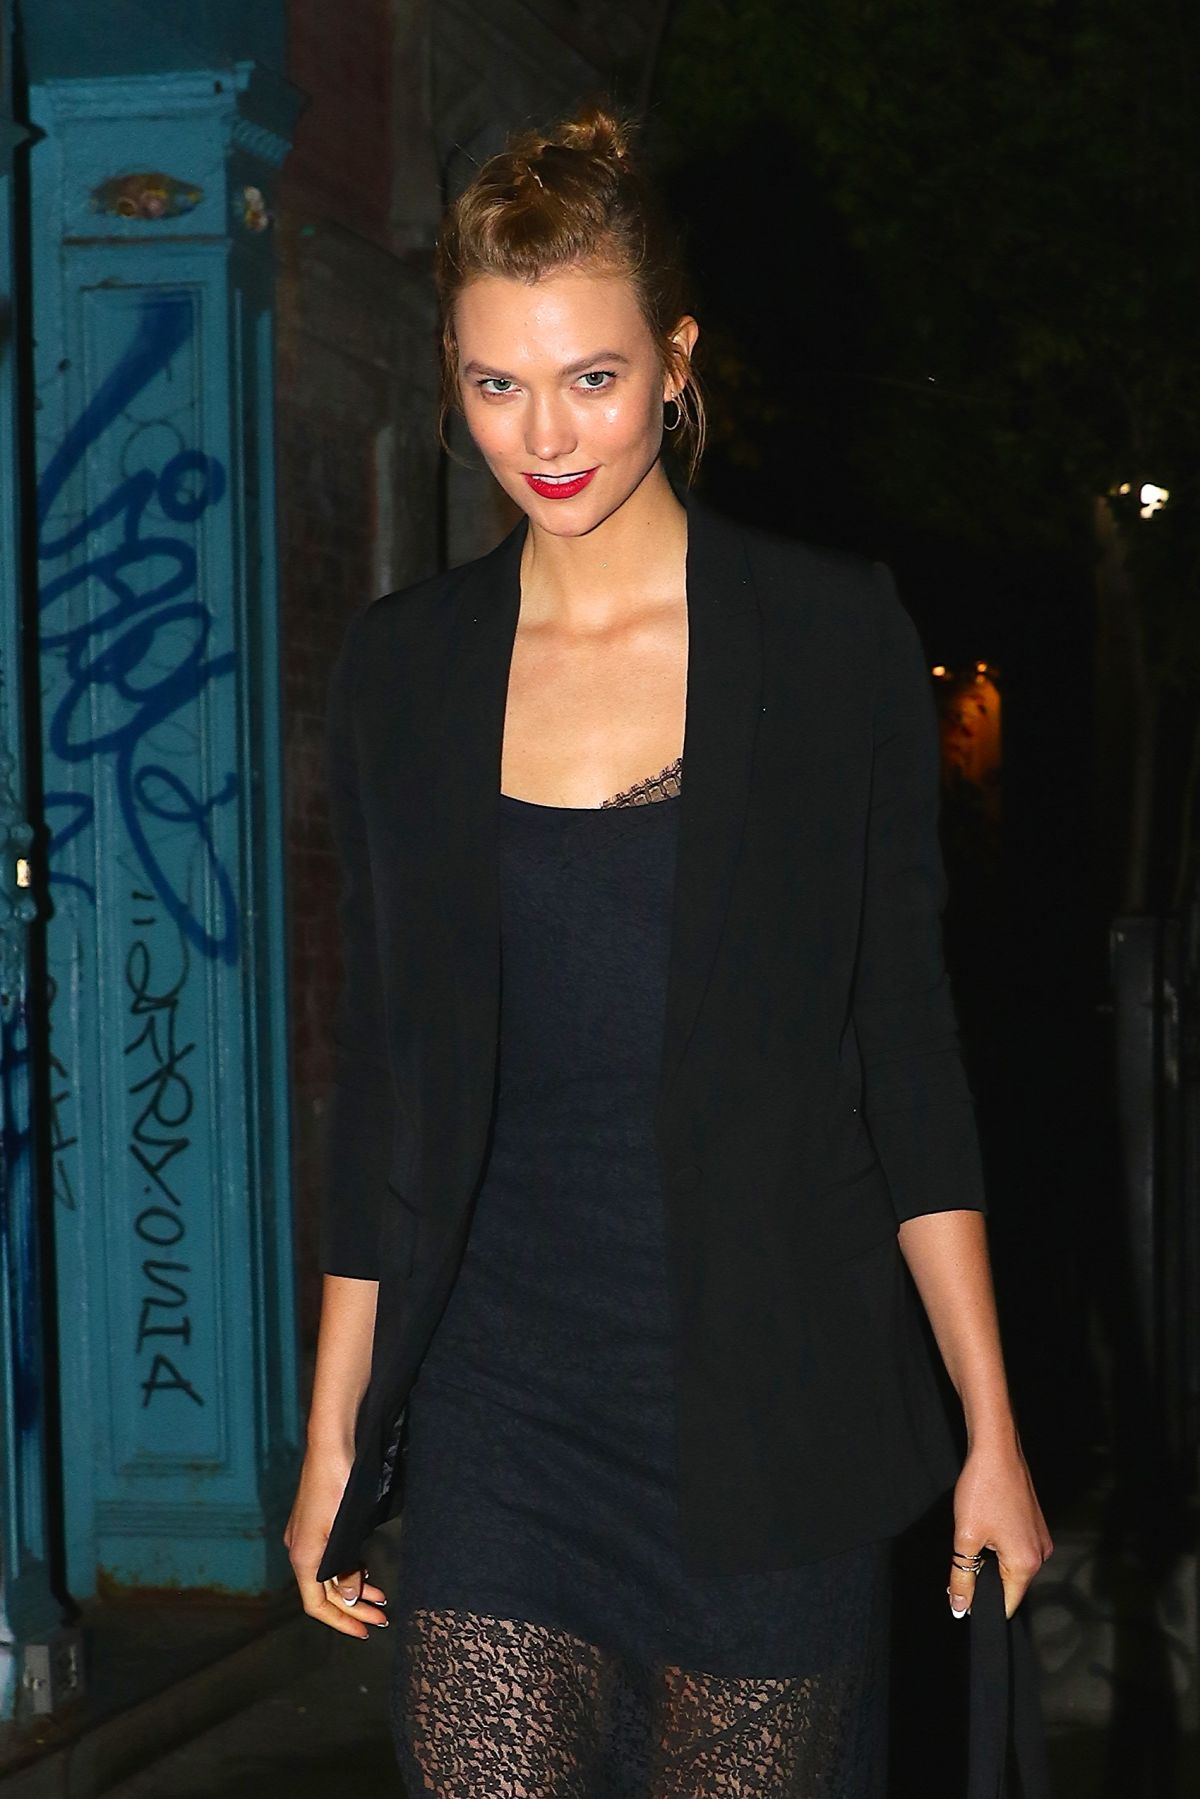 KARLIE KLOSS Night Out in New York 06/06/2017